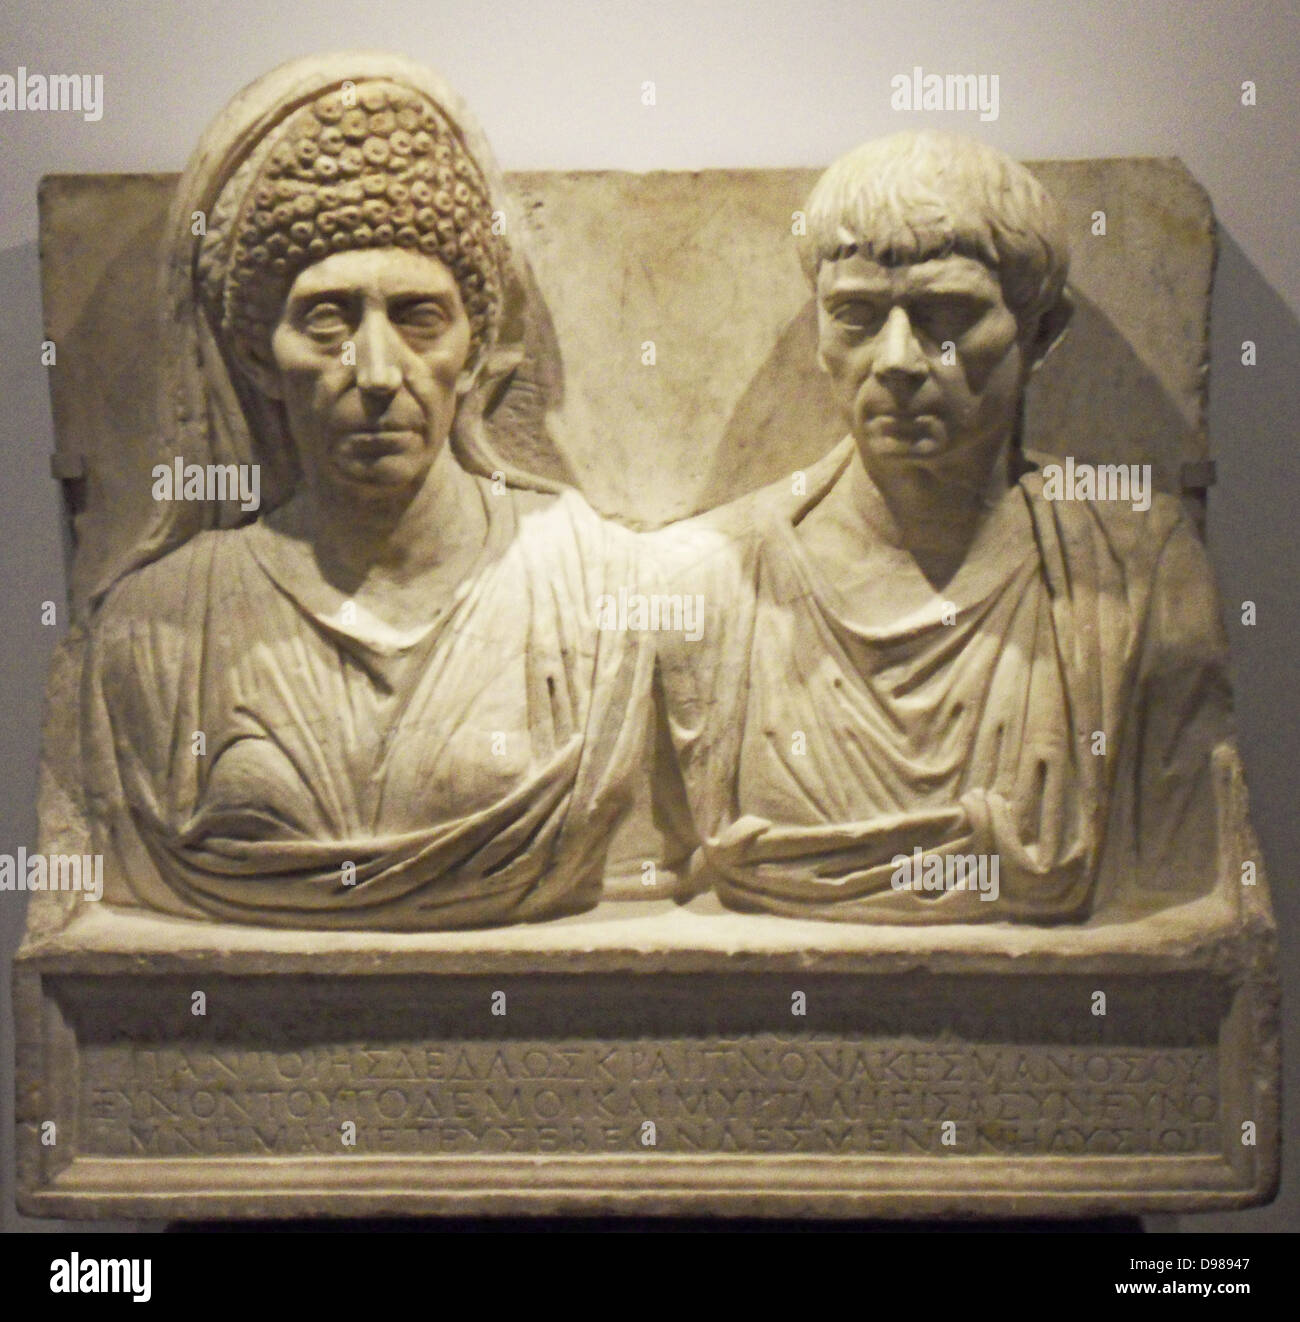 Marble tombstone of the doctor Claudius Agathemerus and his wife Myrtale.  Rome circa 100 AD. - Stock Image